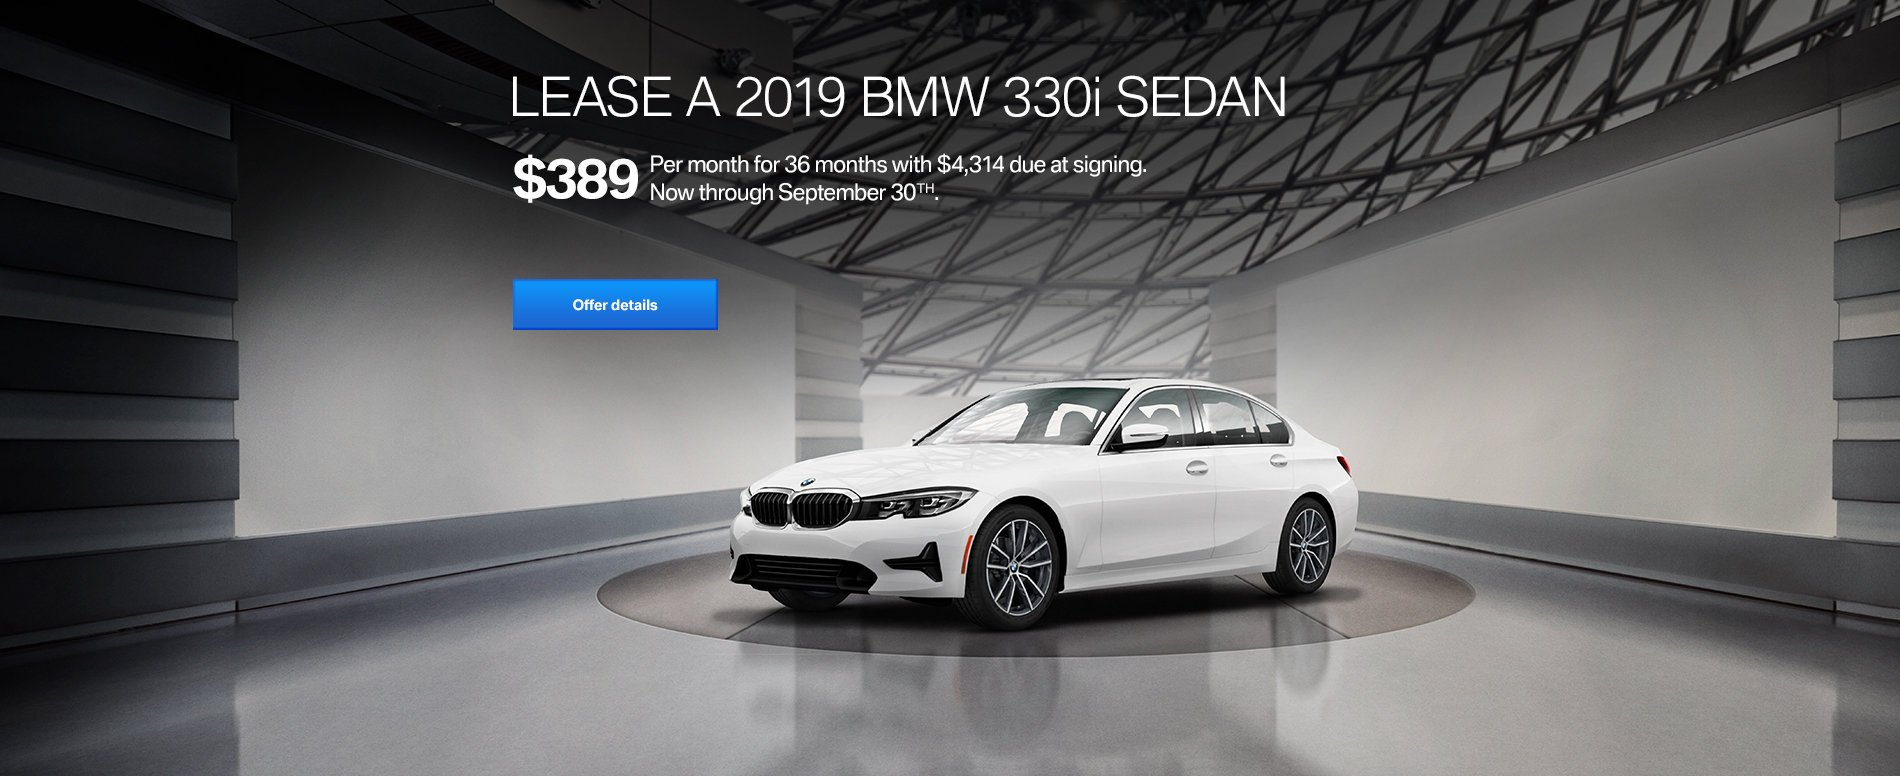 BMW Car Dealer - Austin, Round Rock, & Cedar Park, TX | BMW